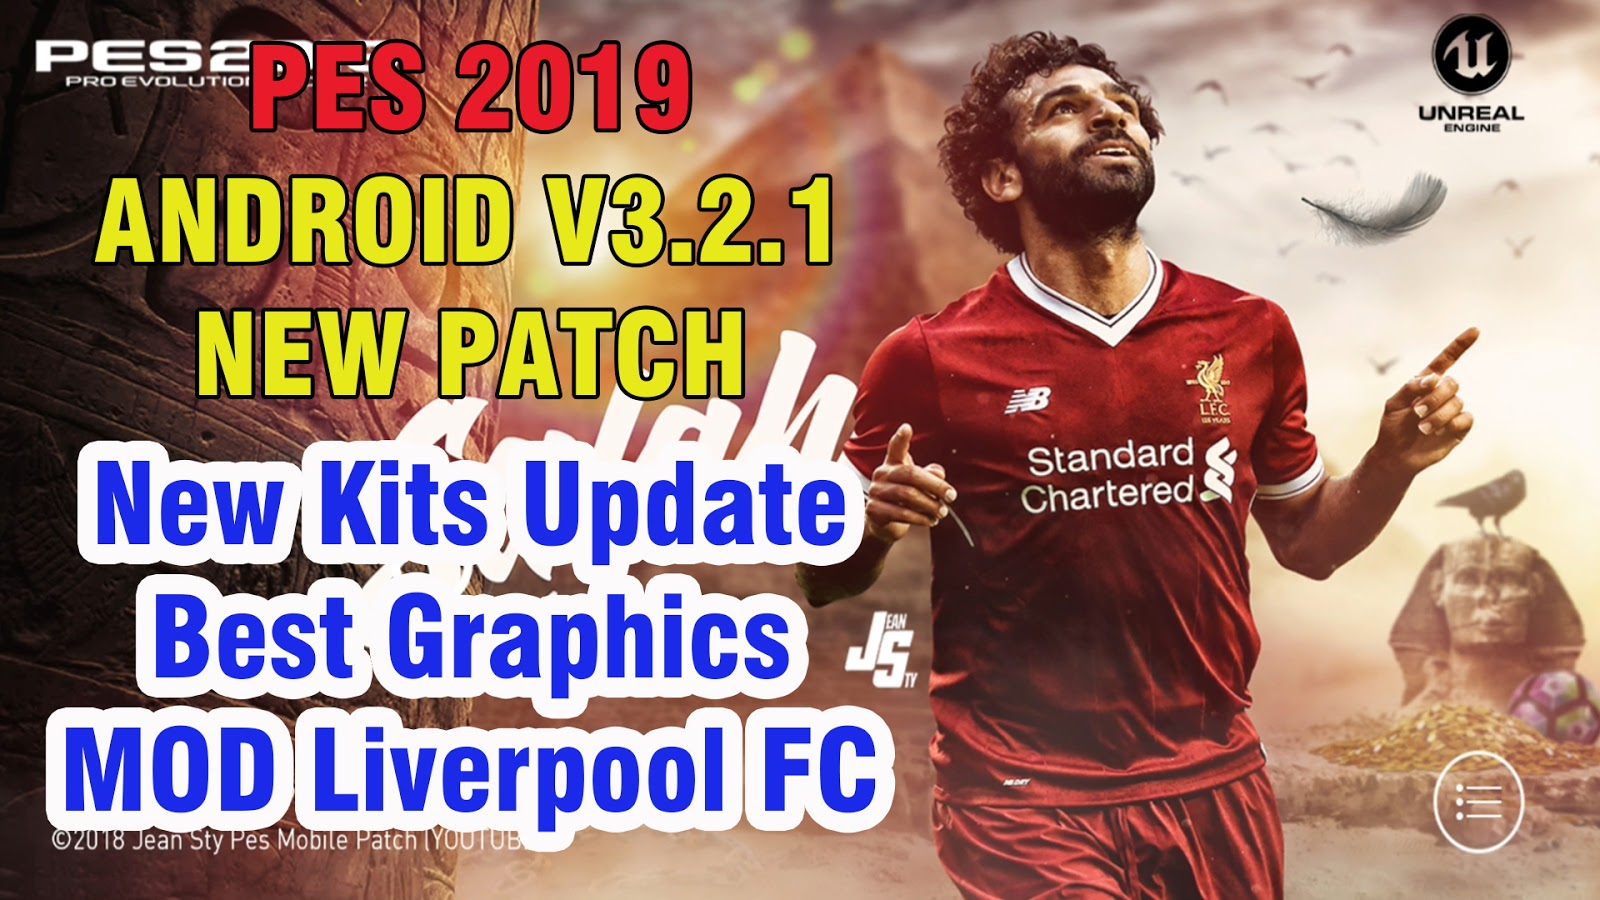 PES 2019 Mobile Patch V3.2.1 New Kits Update Android Best Graphics [MOD Liverpool FC]